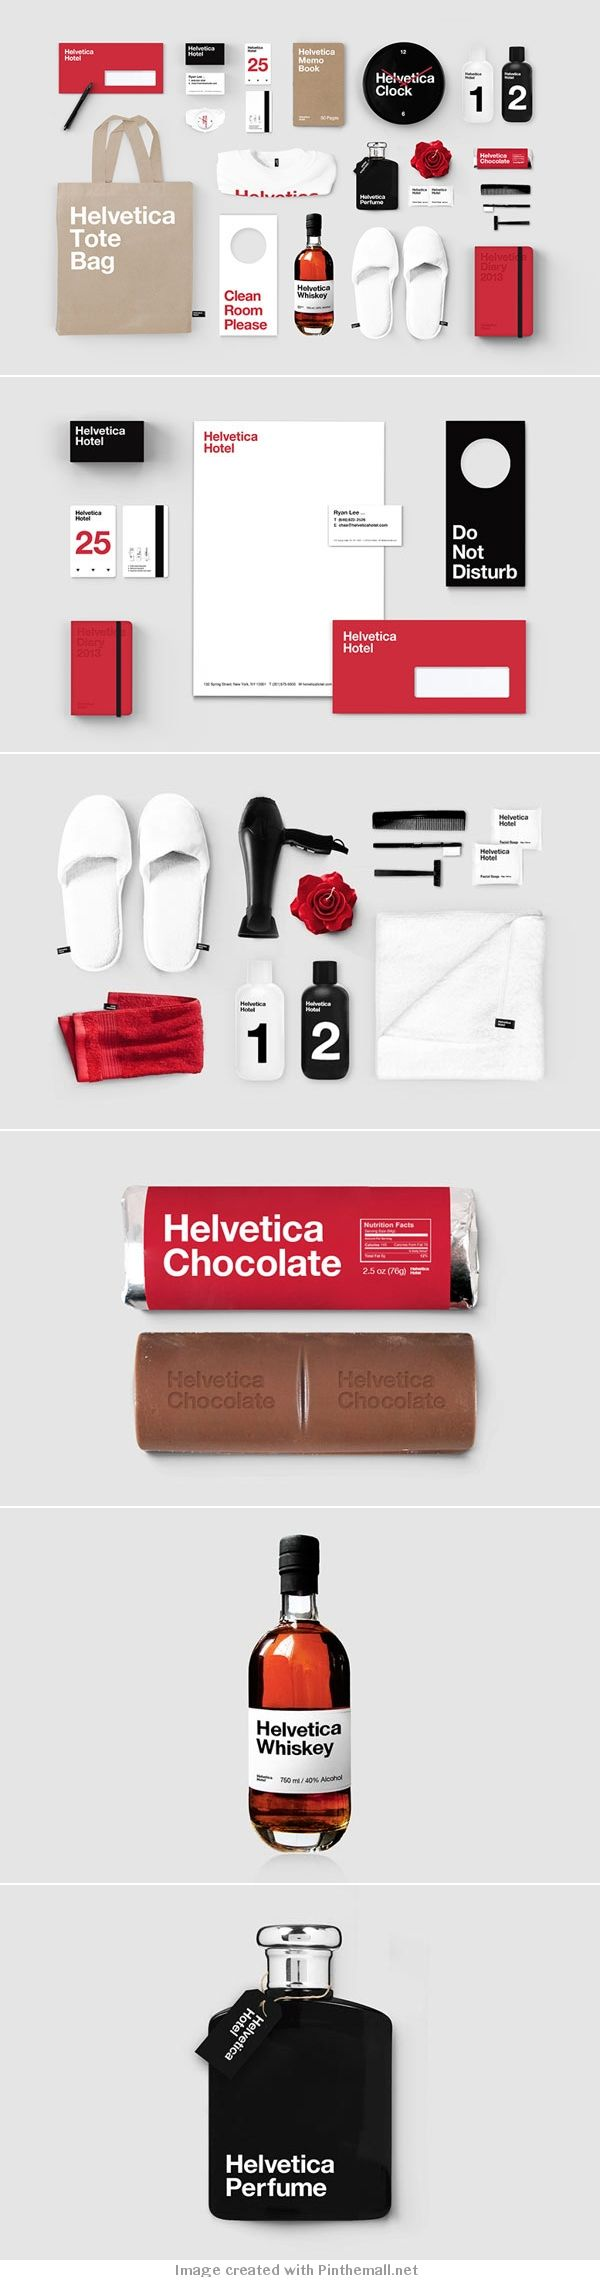 Helvetica Hotel – Branding Study by Albert Son - created via http://pinthemall.net